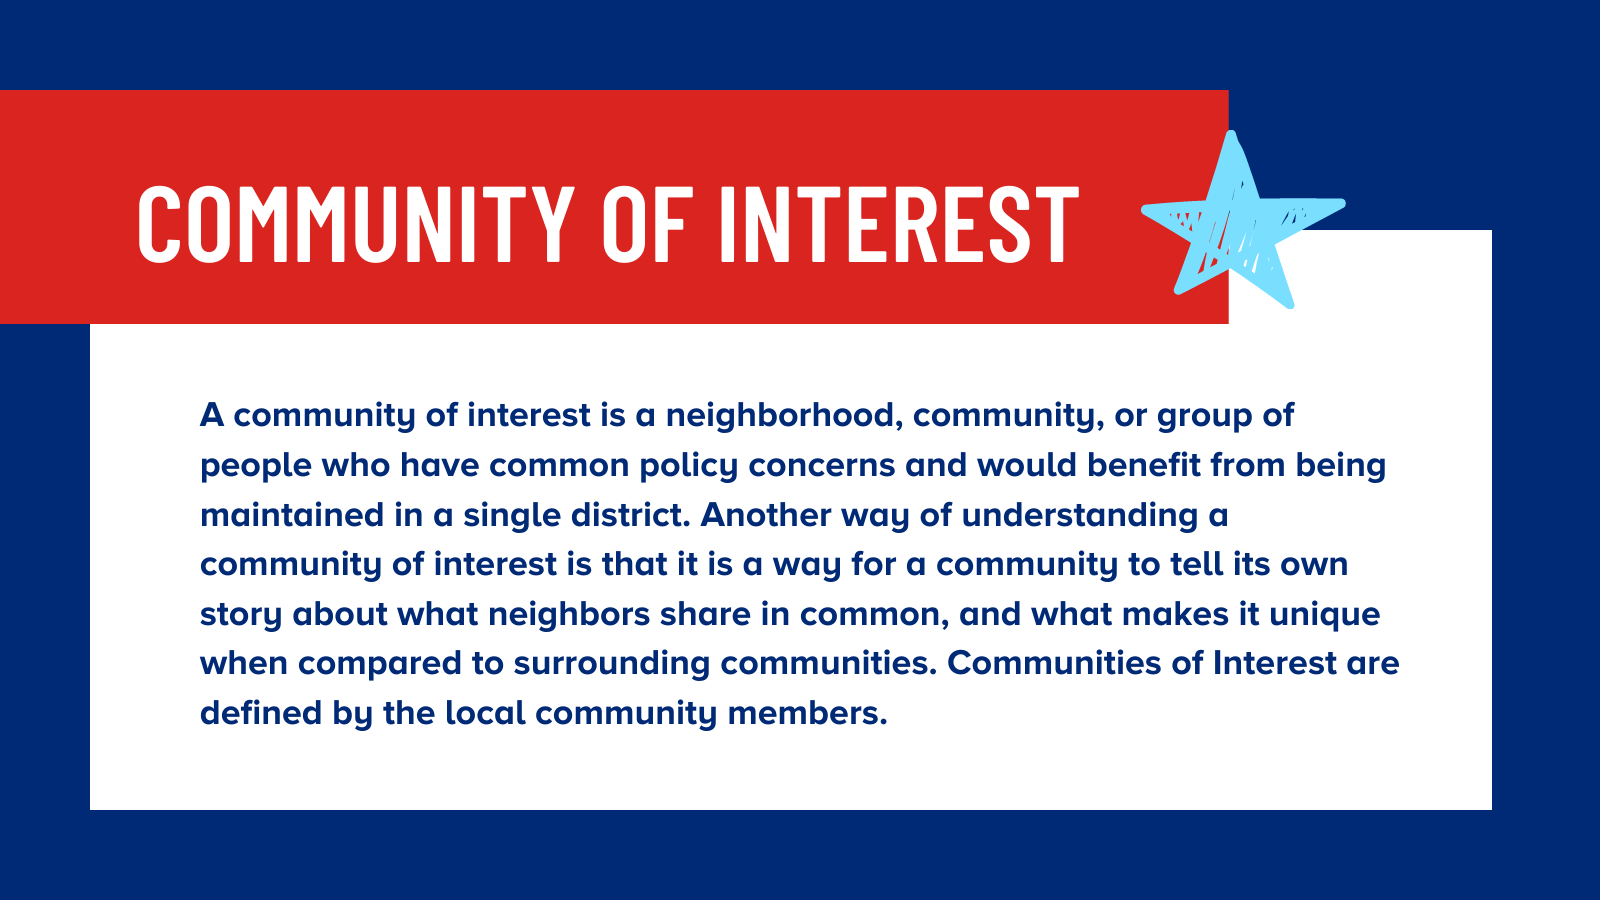 A community of interest is a neighborhood, community, or group of people who have common policy concerns and would benefit from being maintained in a single district. Another way of understanding a community of interest is that it is a way for a community to tell its own story about what neighbors share in common, and what makes it unique when compared to surrounding communities. Communities of Interest are defined by the local community members.